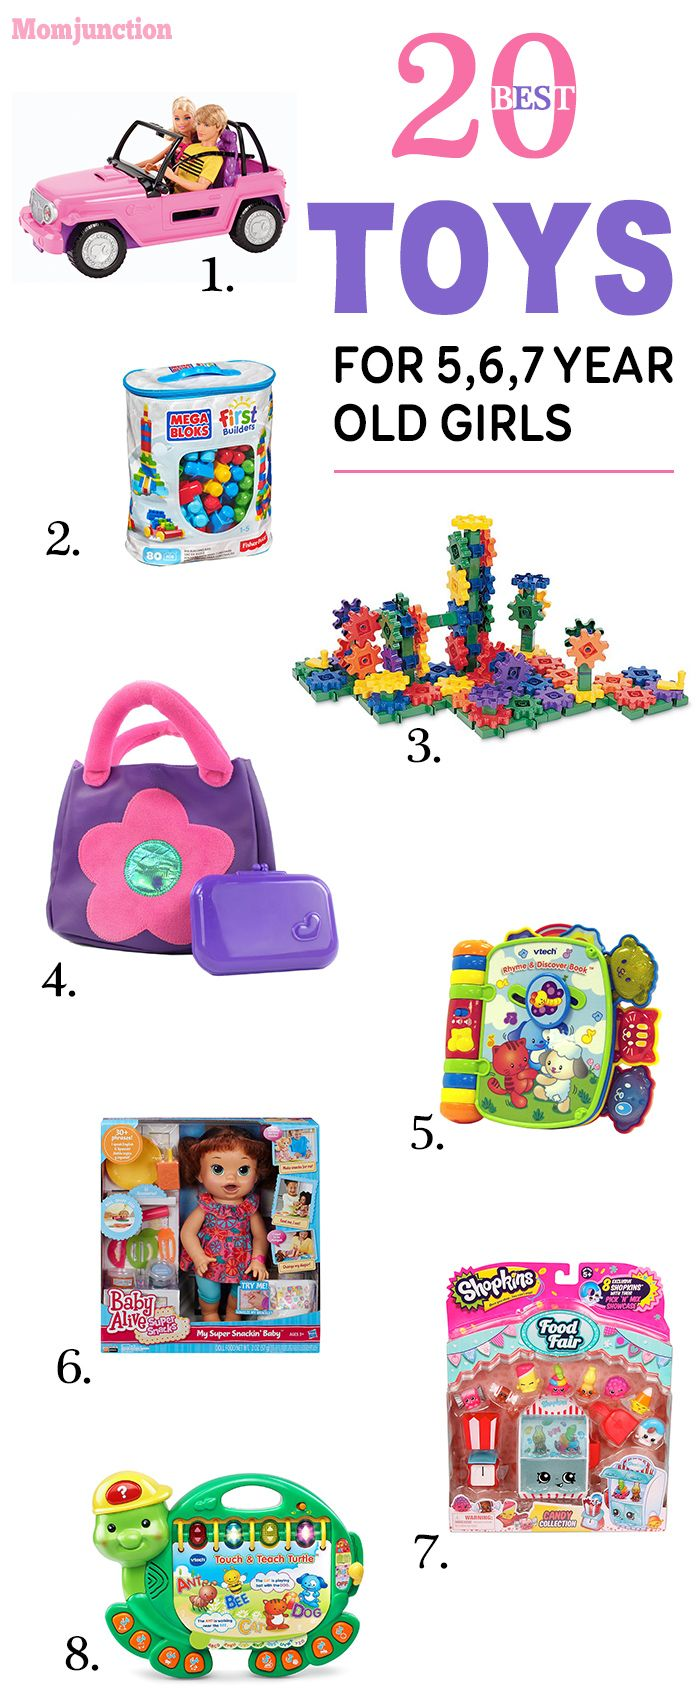 15 Best Toys For 5,6 And 7-year-old Girls | Kids | Pinterest | Toy ...